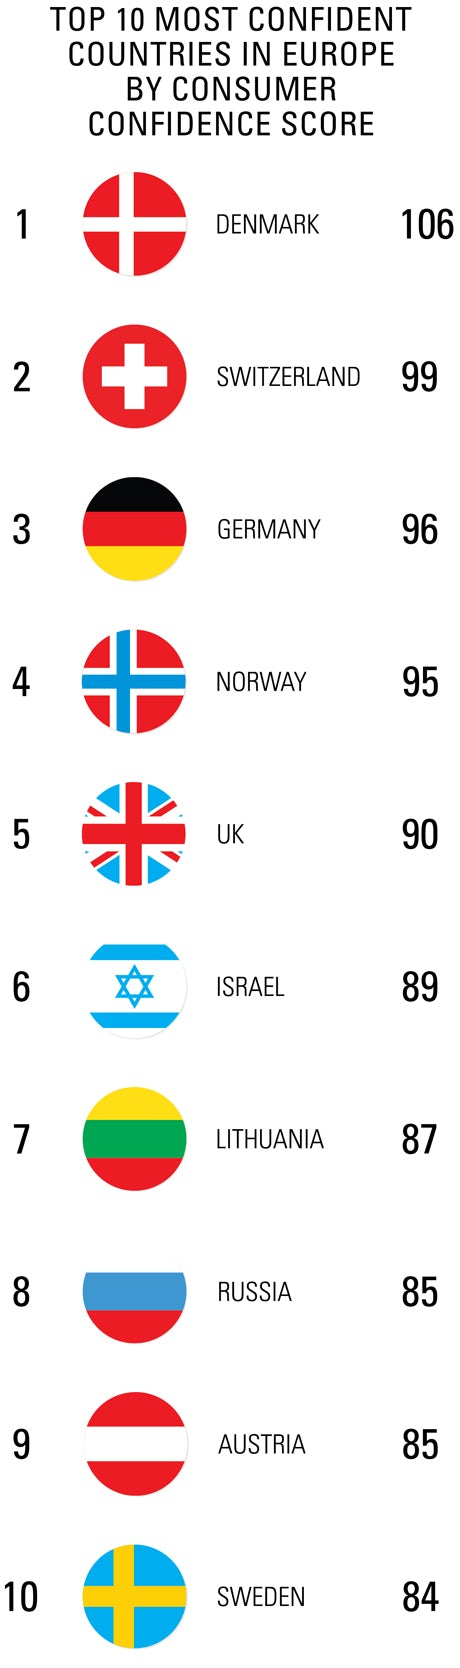 Top 10 most confident countries in Europe by consumer confidence score 460